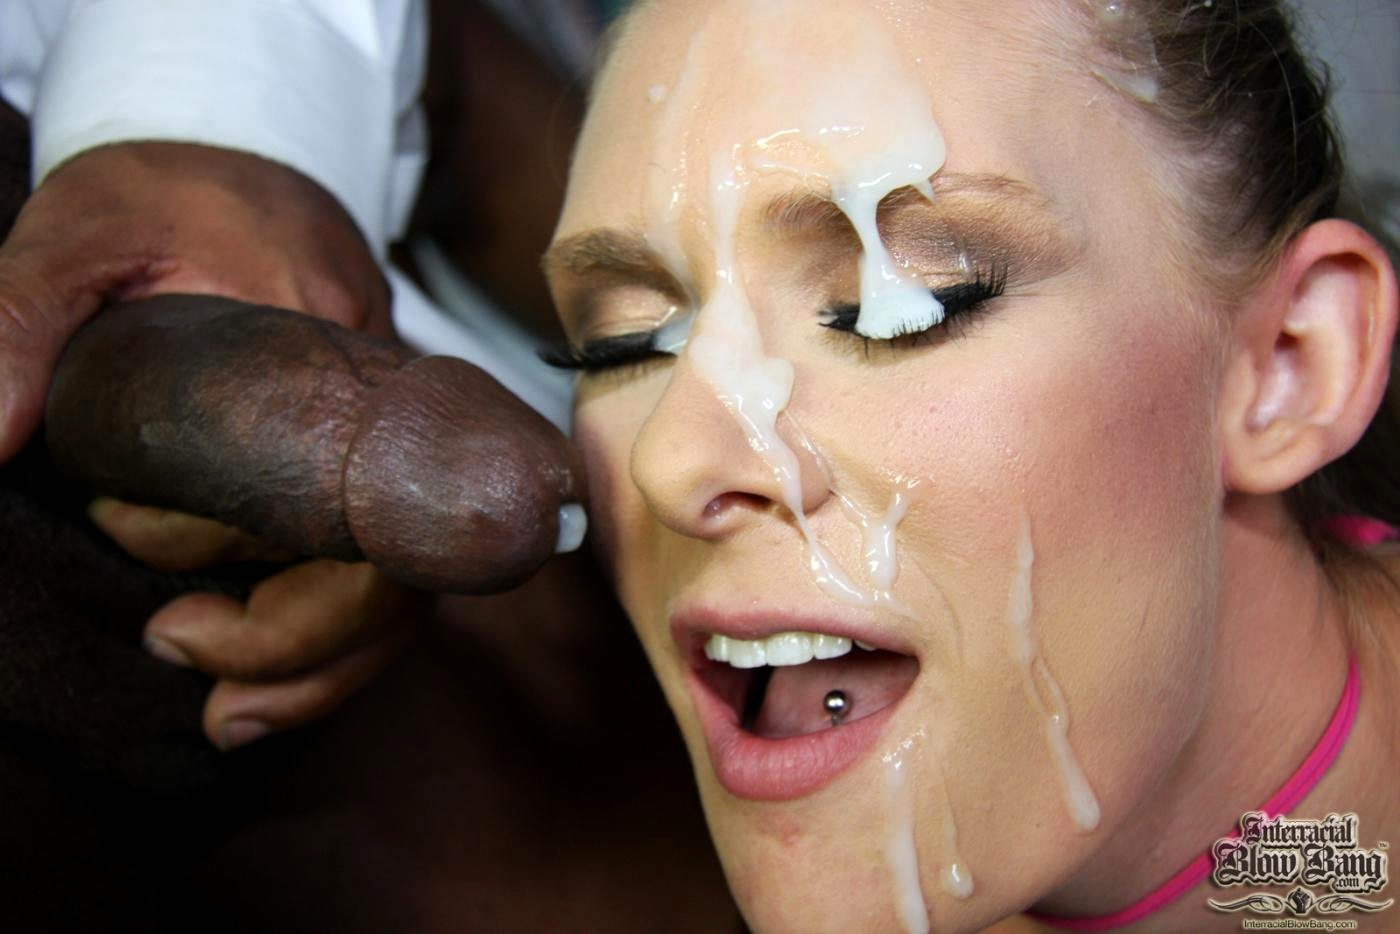 Interracial black cock slut cum bukkake